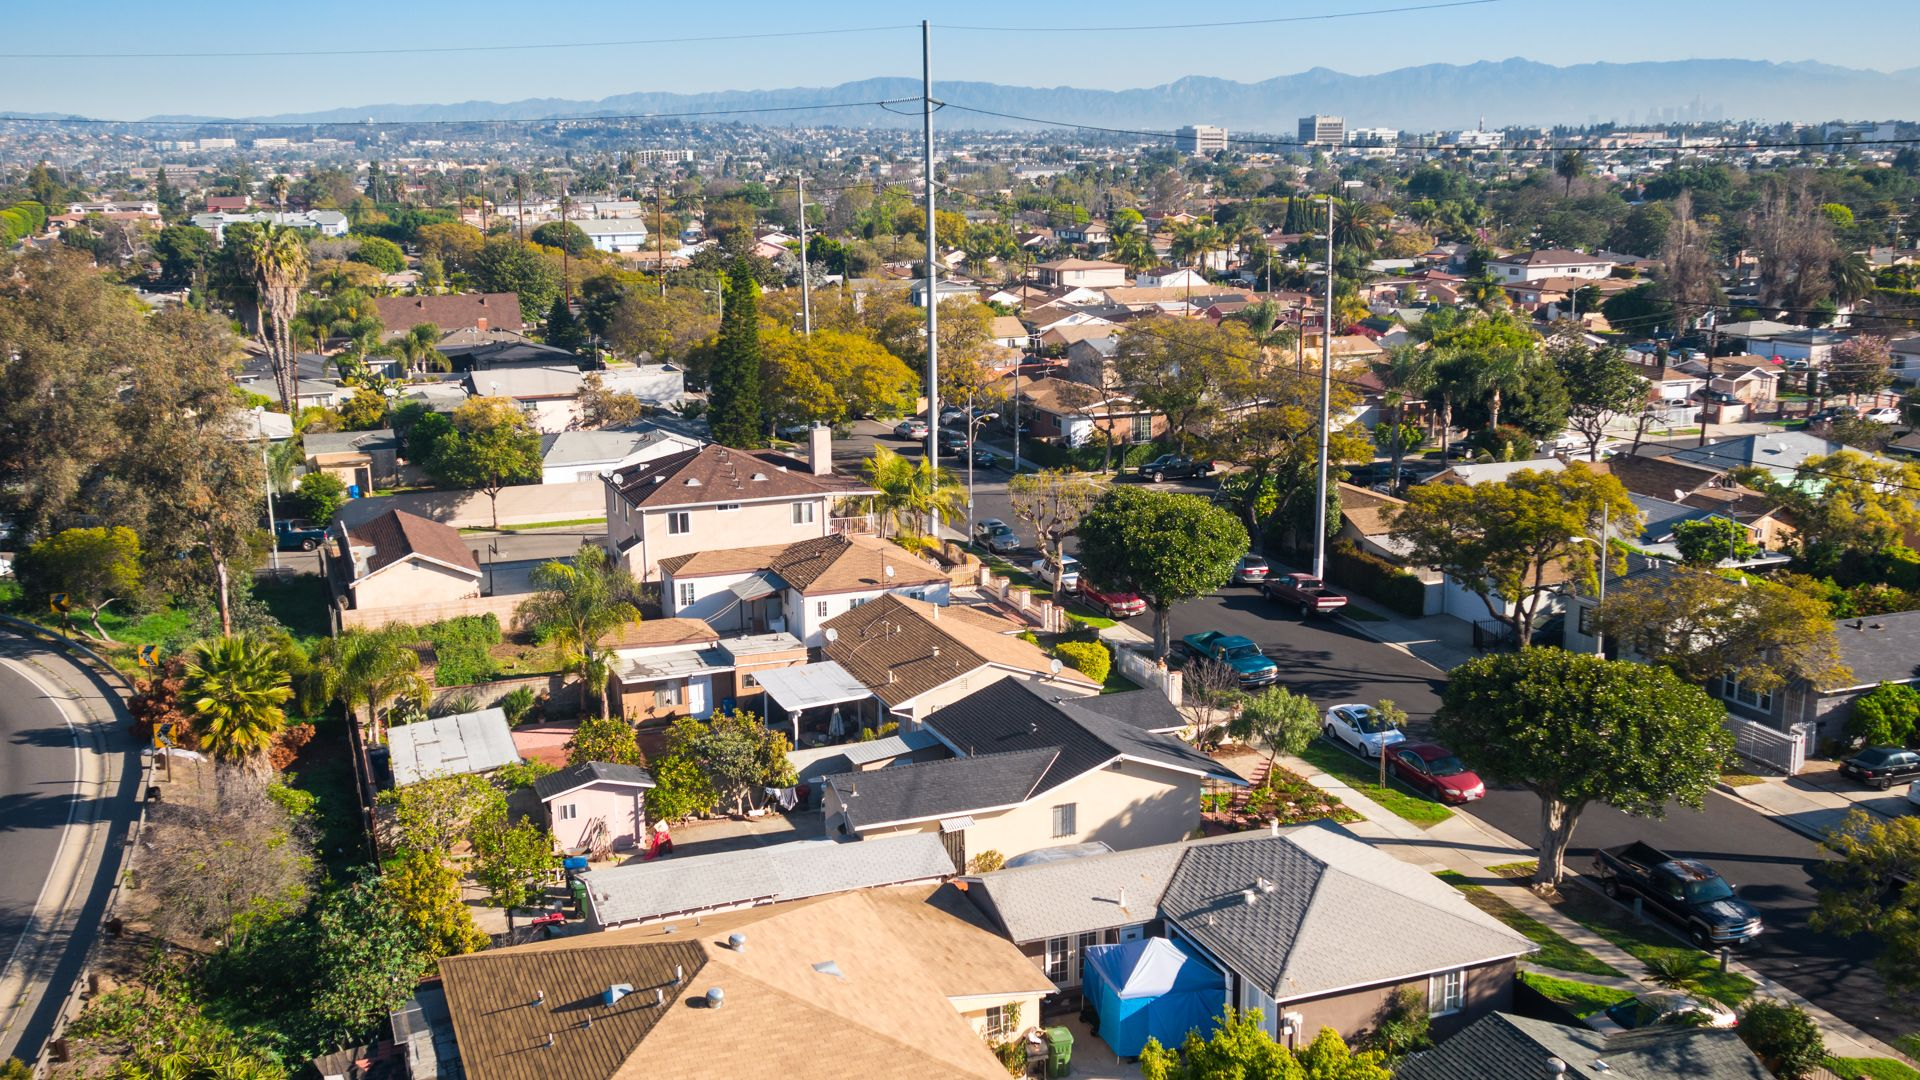 Photo of a Residential Neighborhood with Houses and Rooftops in the Inglewood area of Los Angeles, California, USA, shot from above.